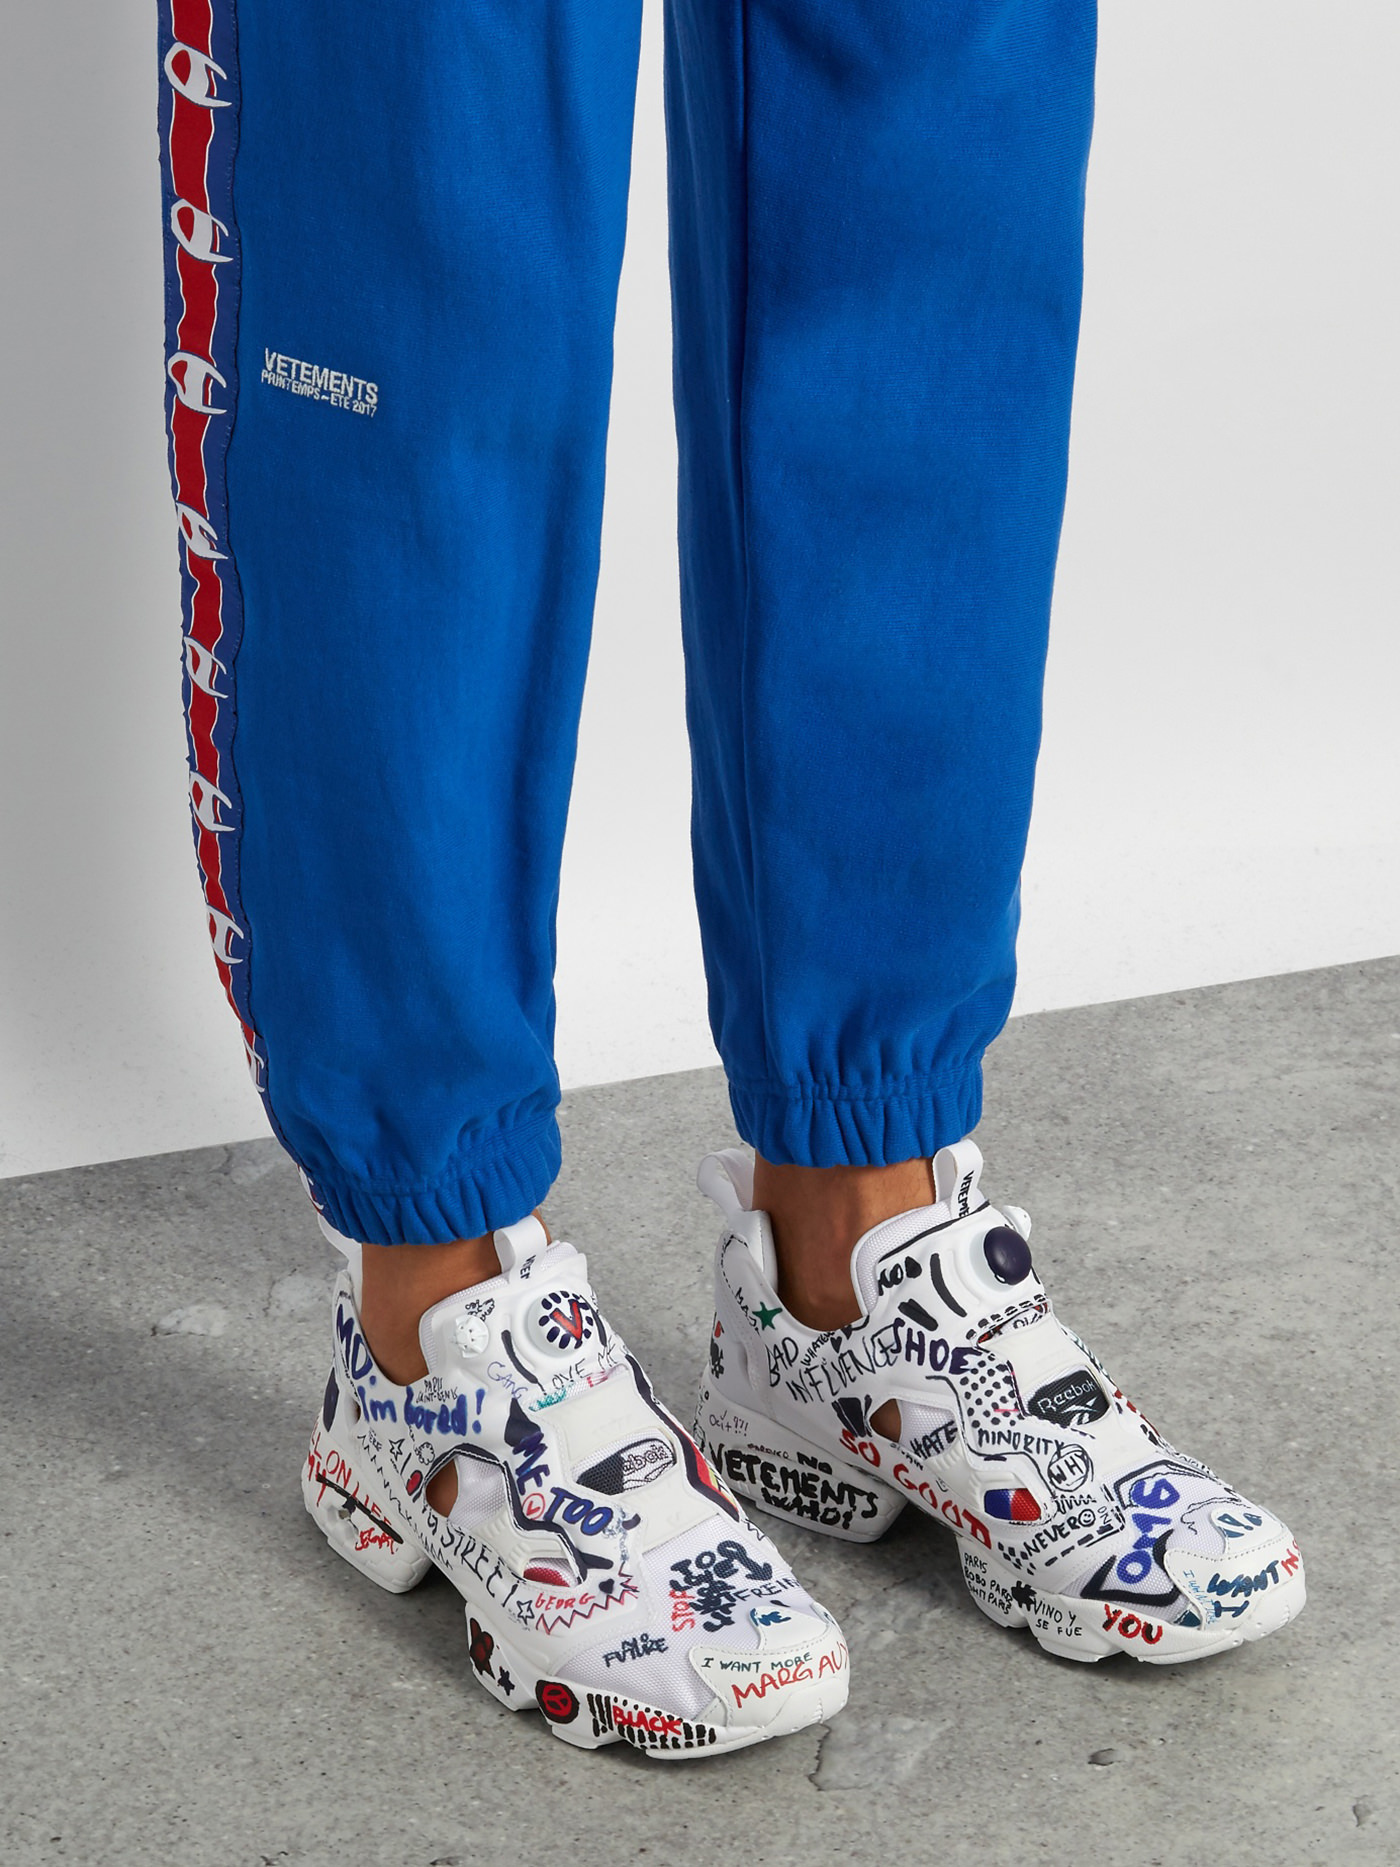 vetements-reebok-02